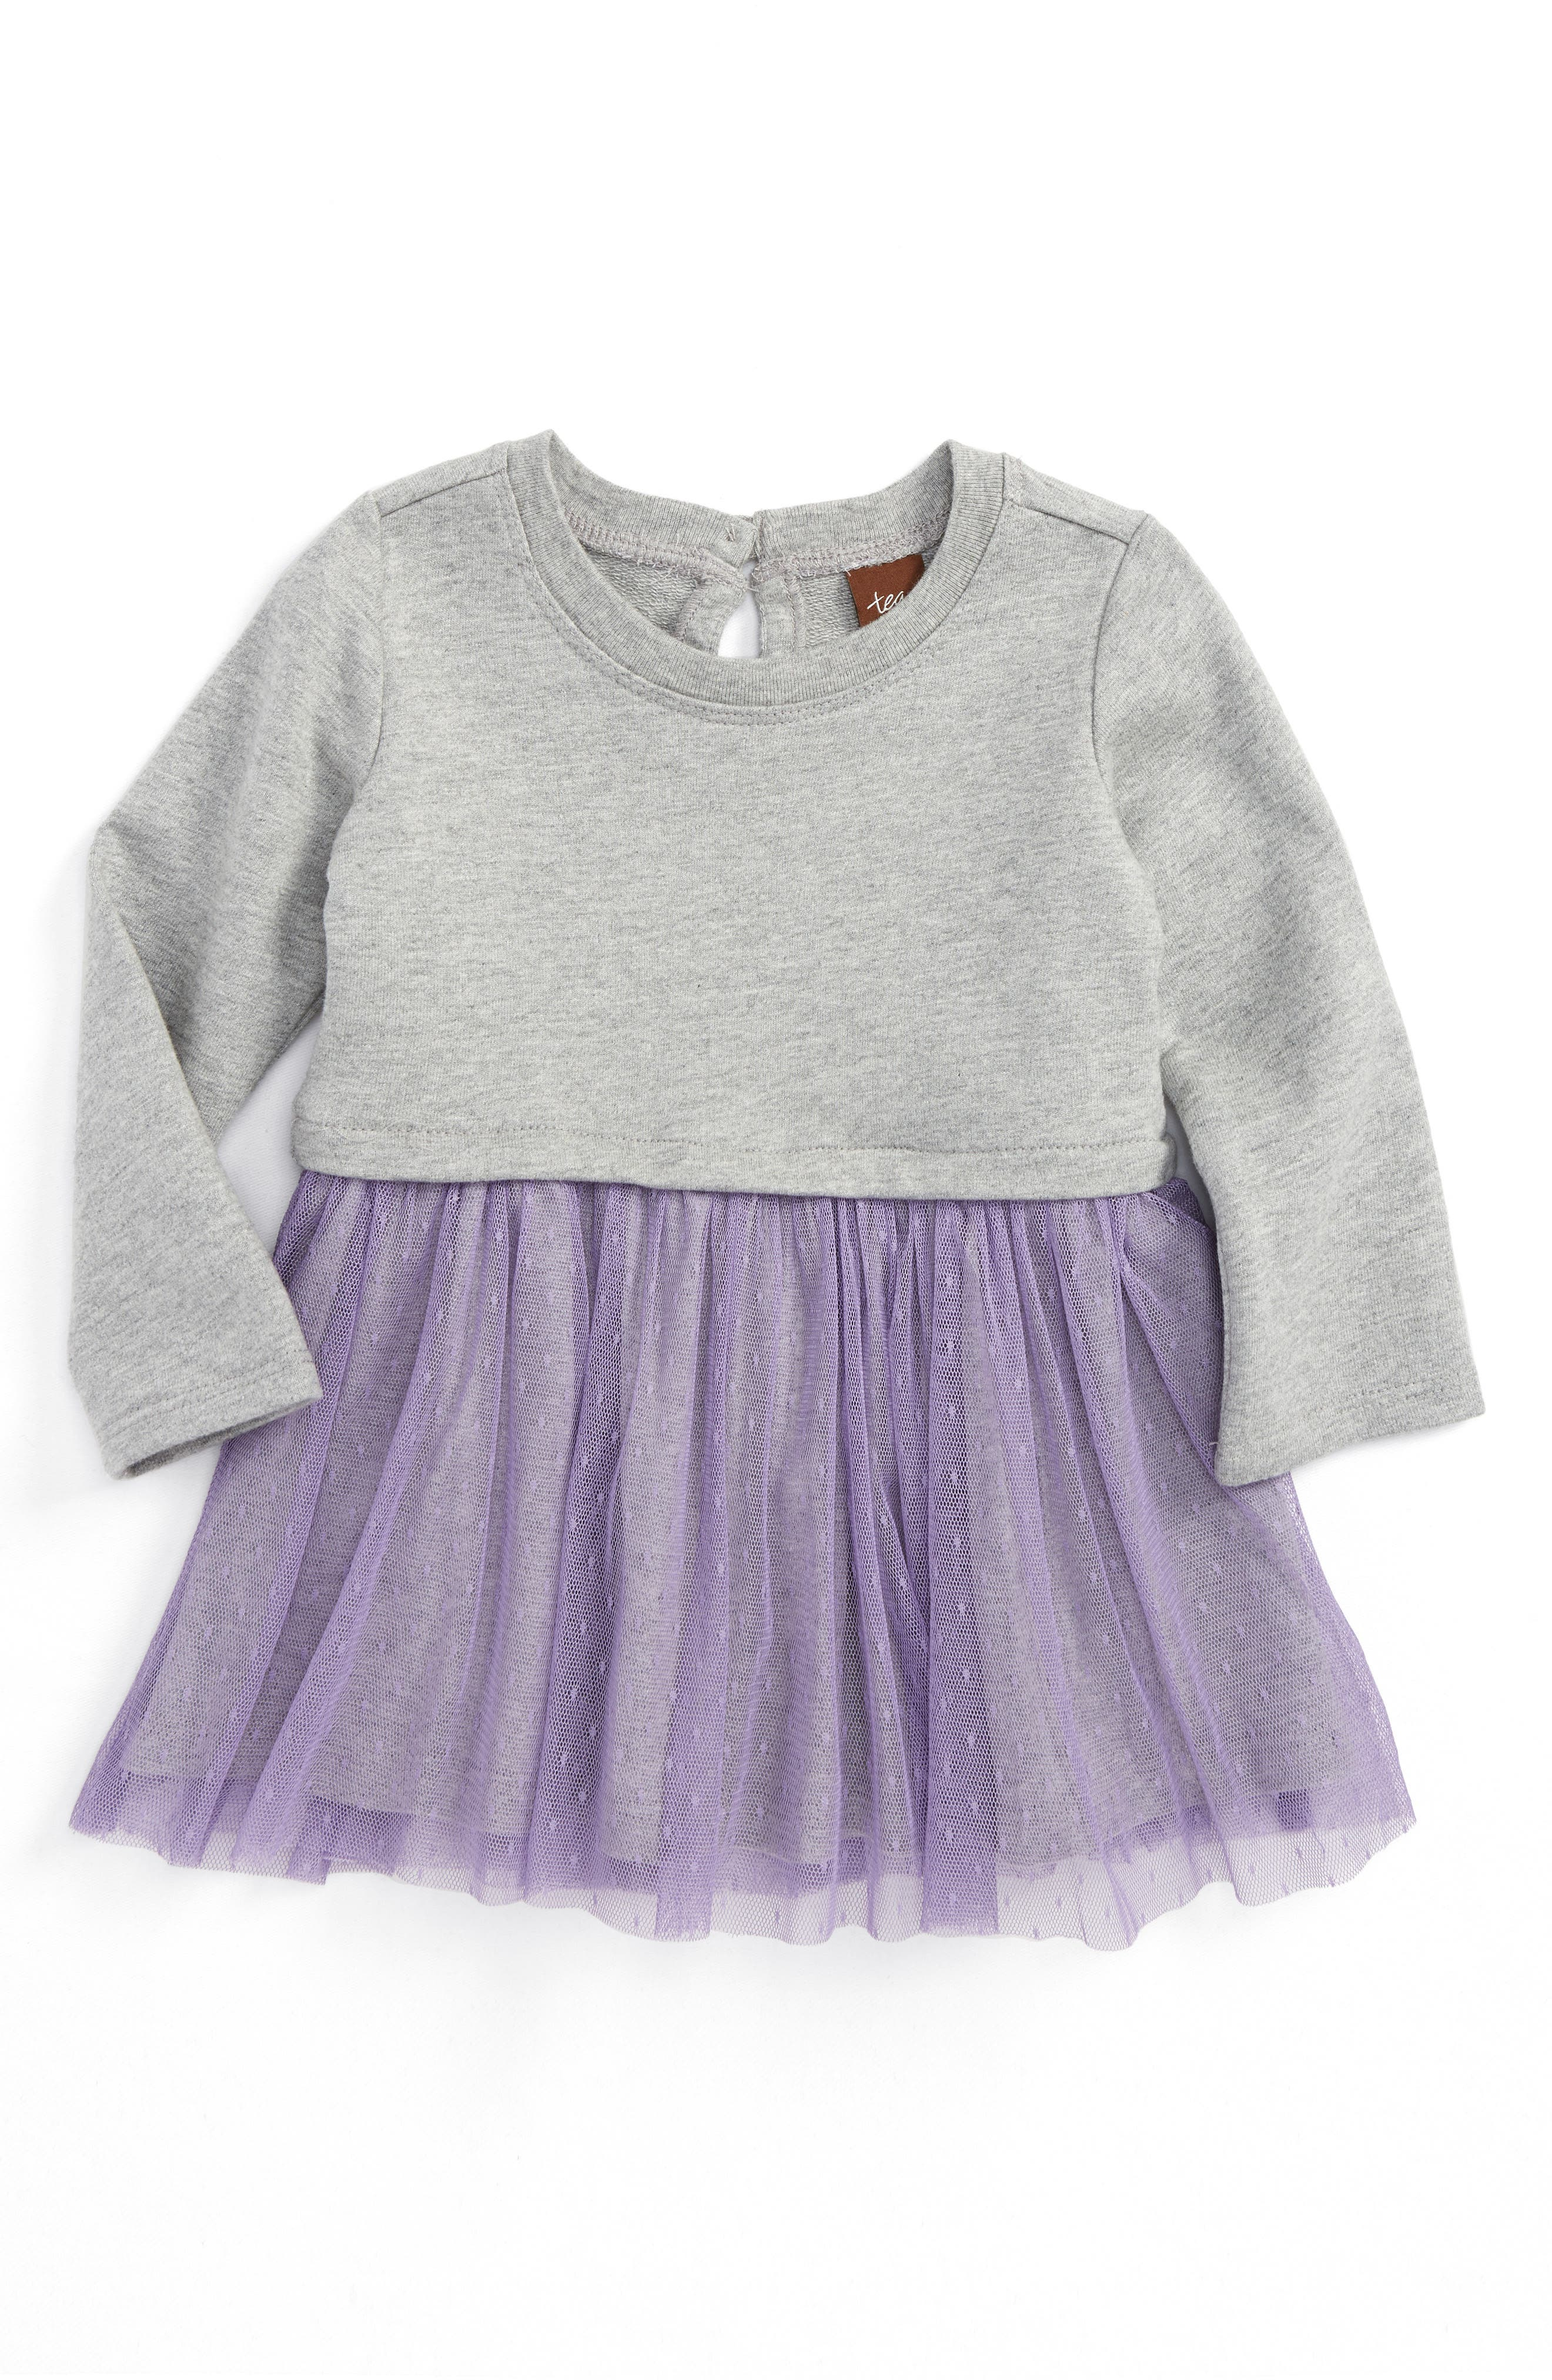 Tulle Skirted Dress,                             Main thumbnail 1, color,                             Med Heather Grey